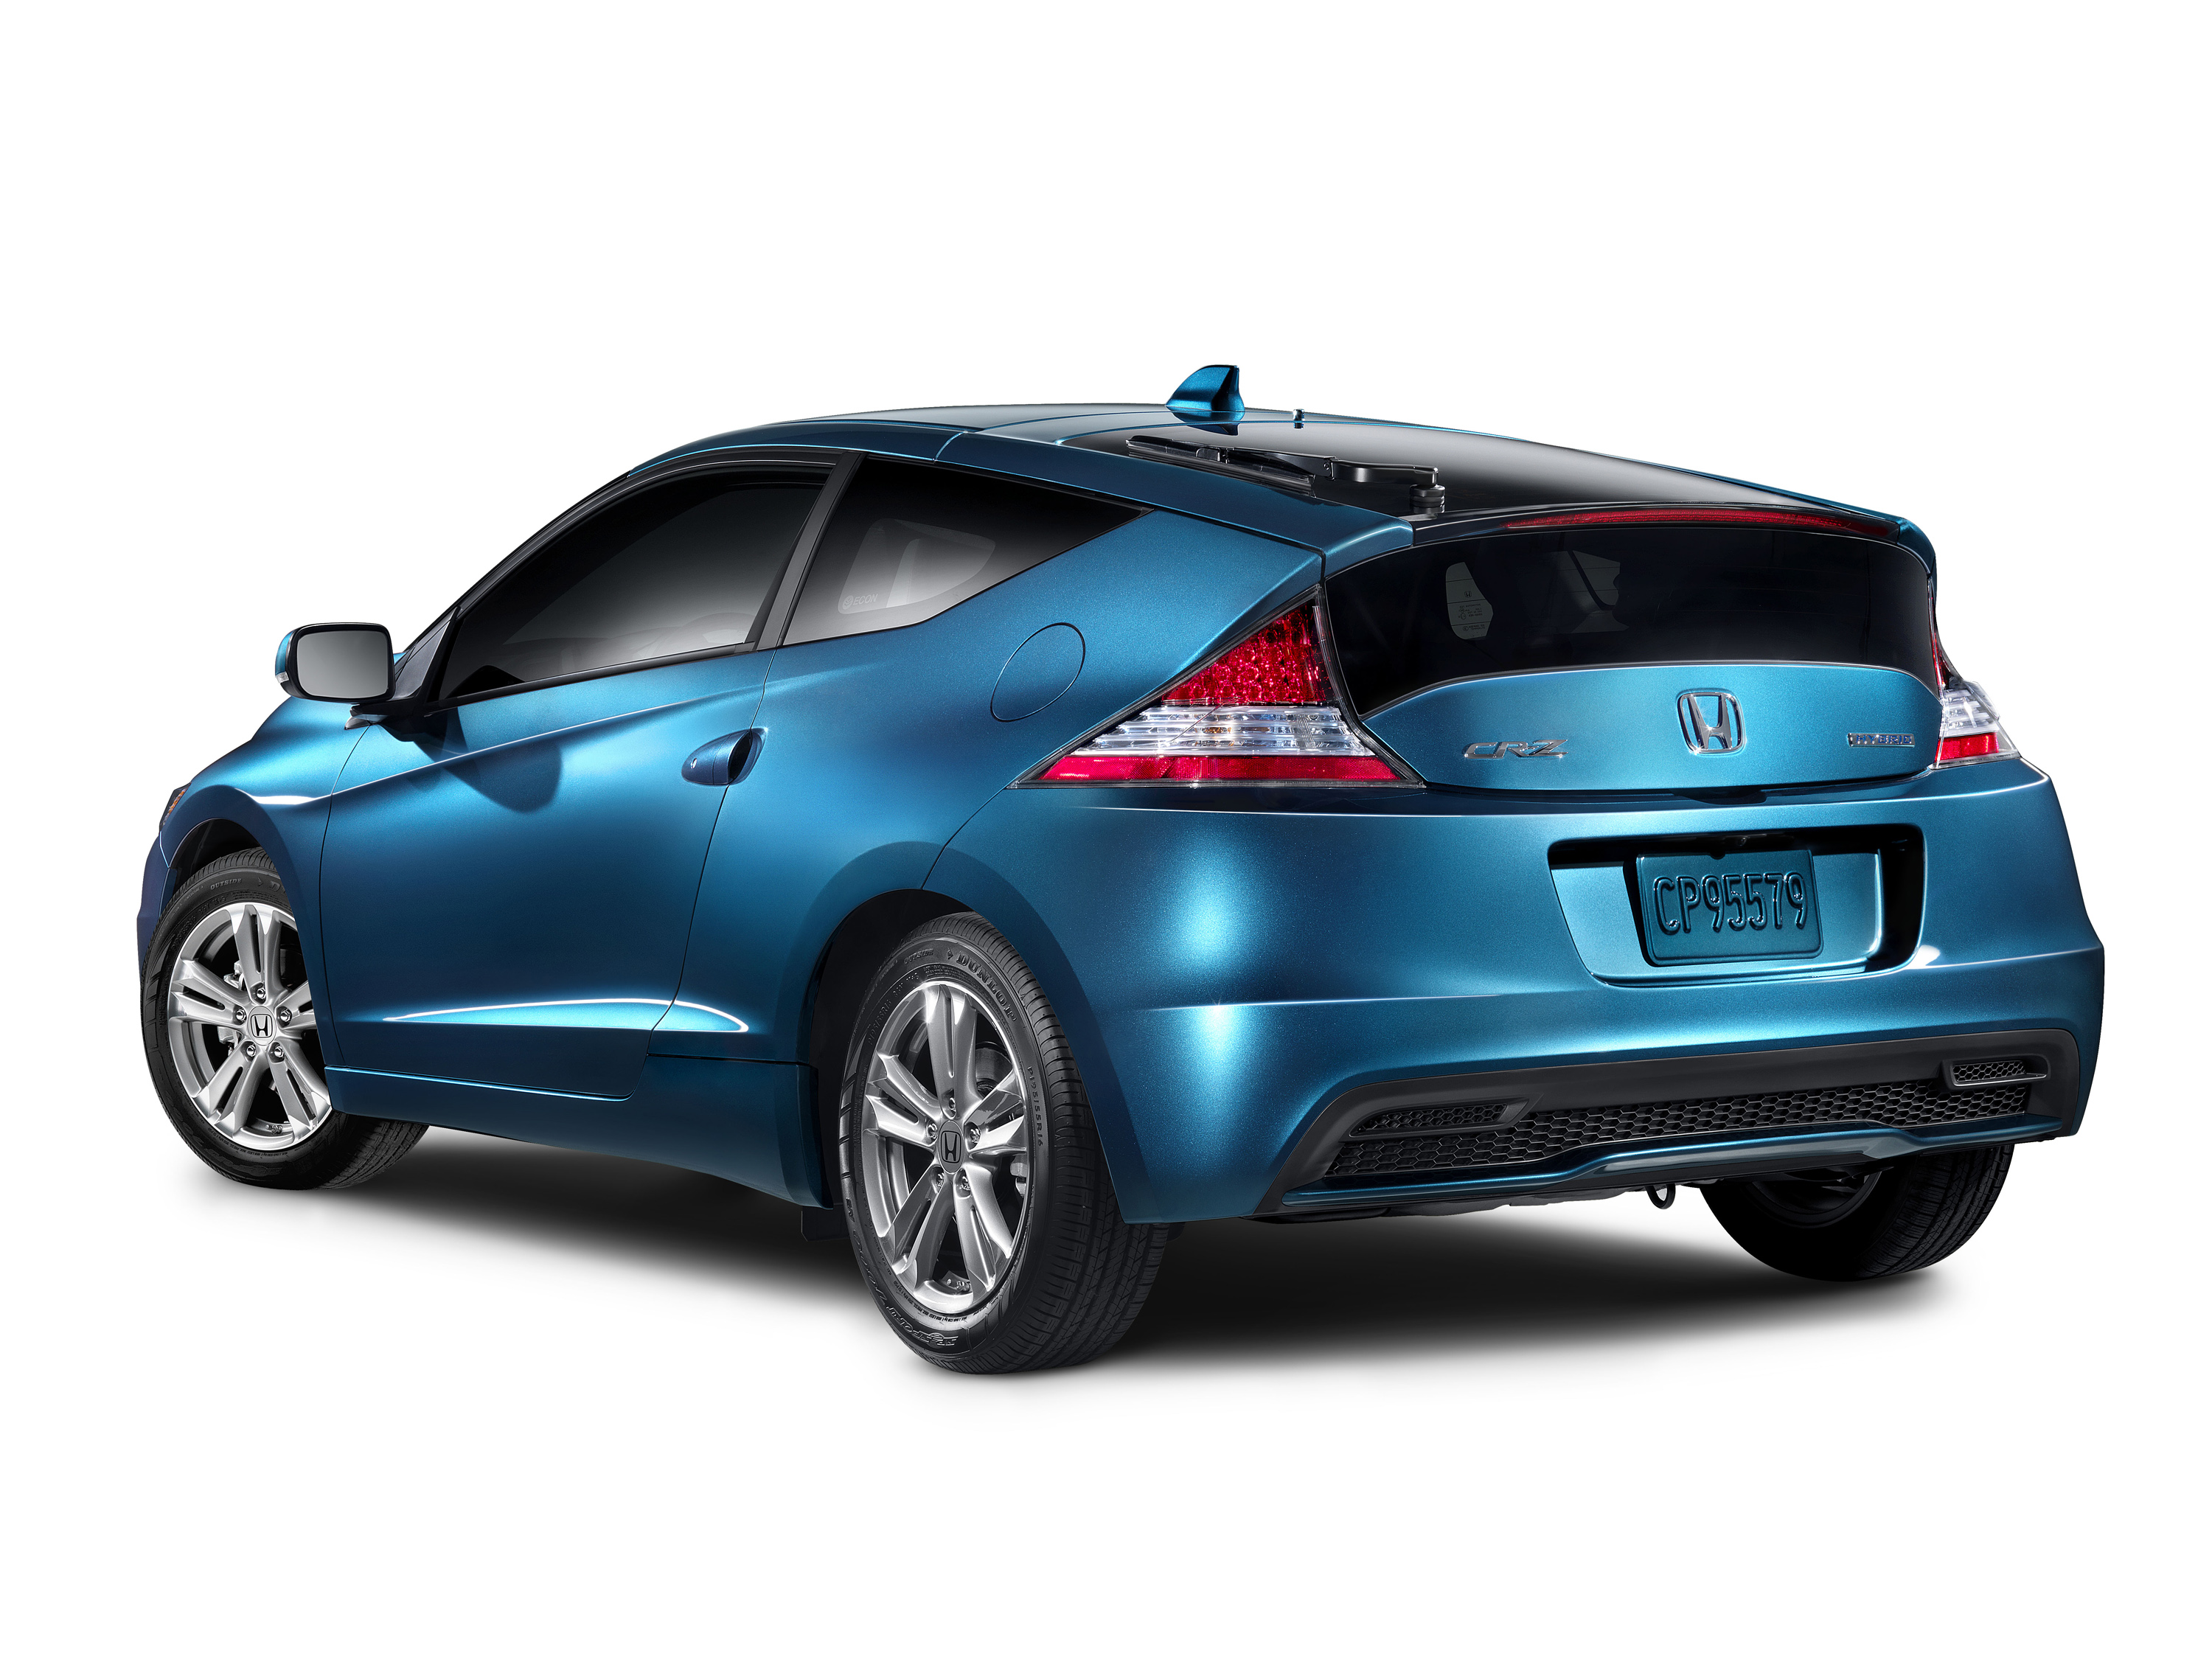 2015 honda cr z 100477516 for Honda hybrid cars